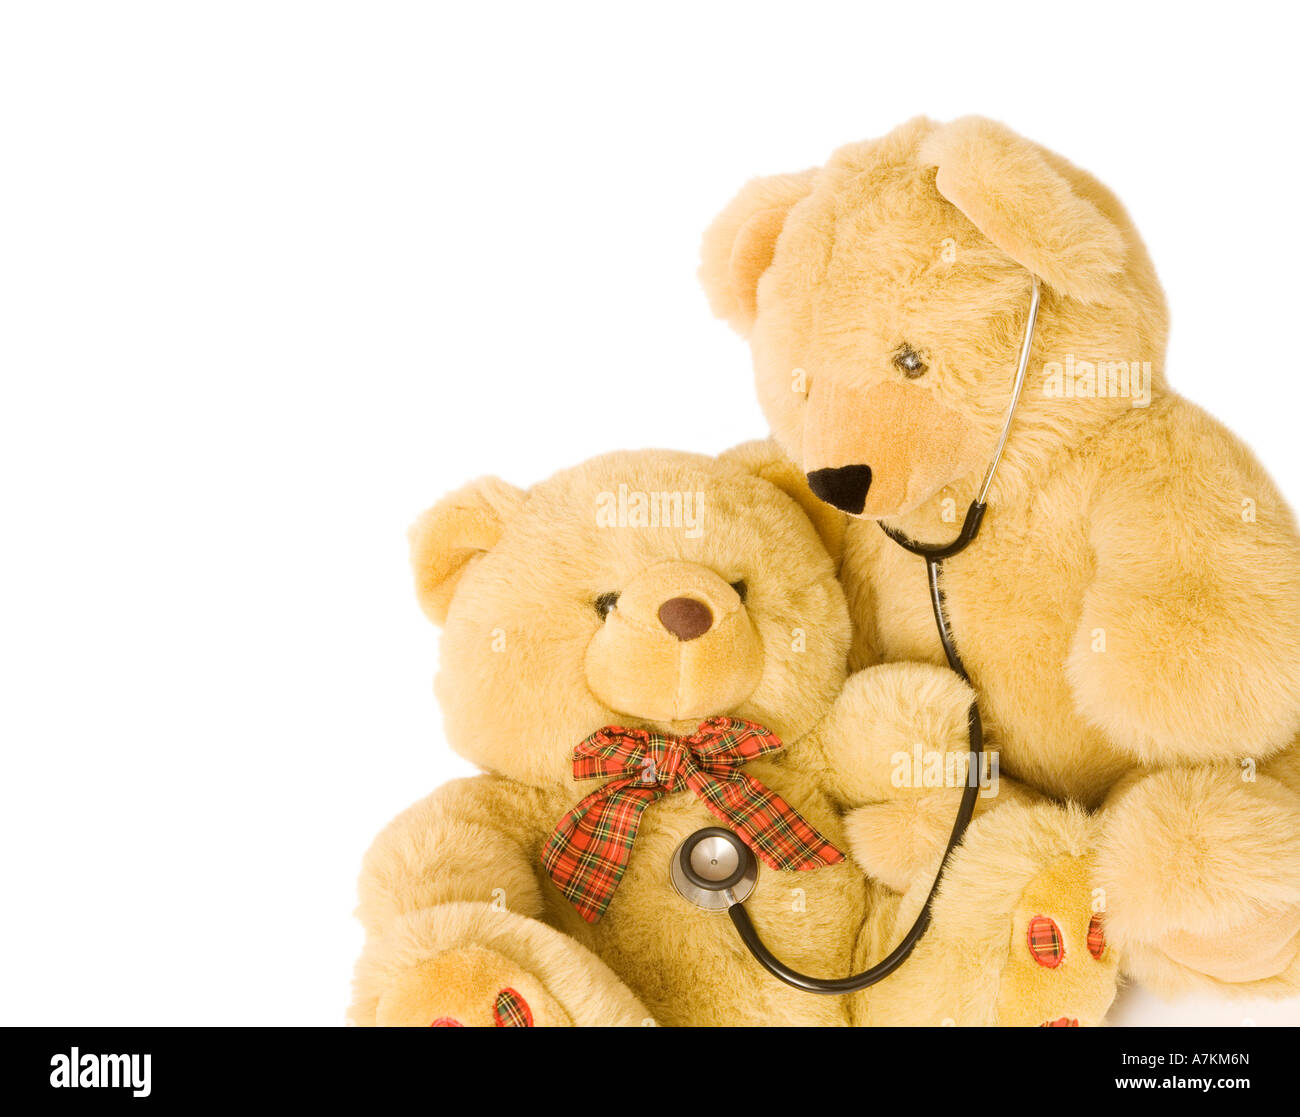 Teddy bears with stethoscope posing as doctor and patient. Ideal to illustrate pediatrics. - Stock Image